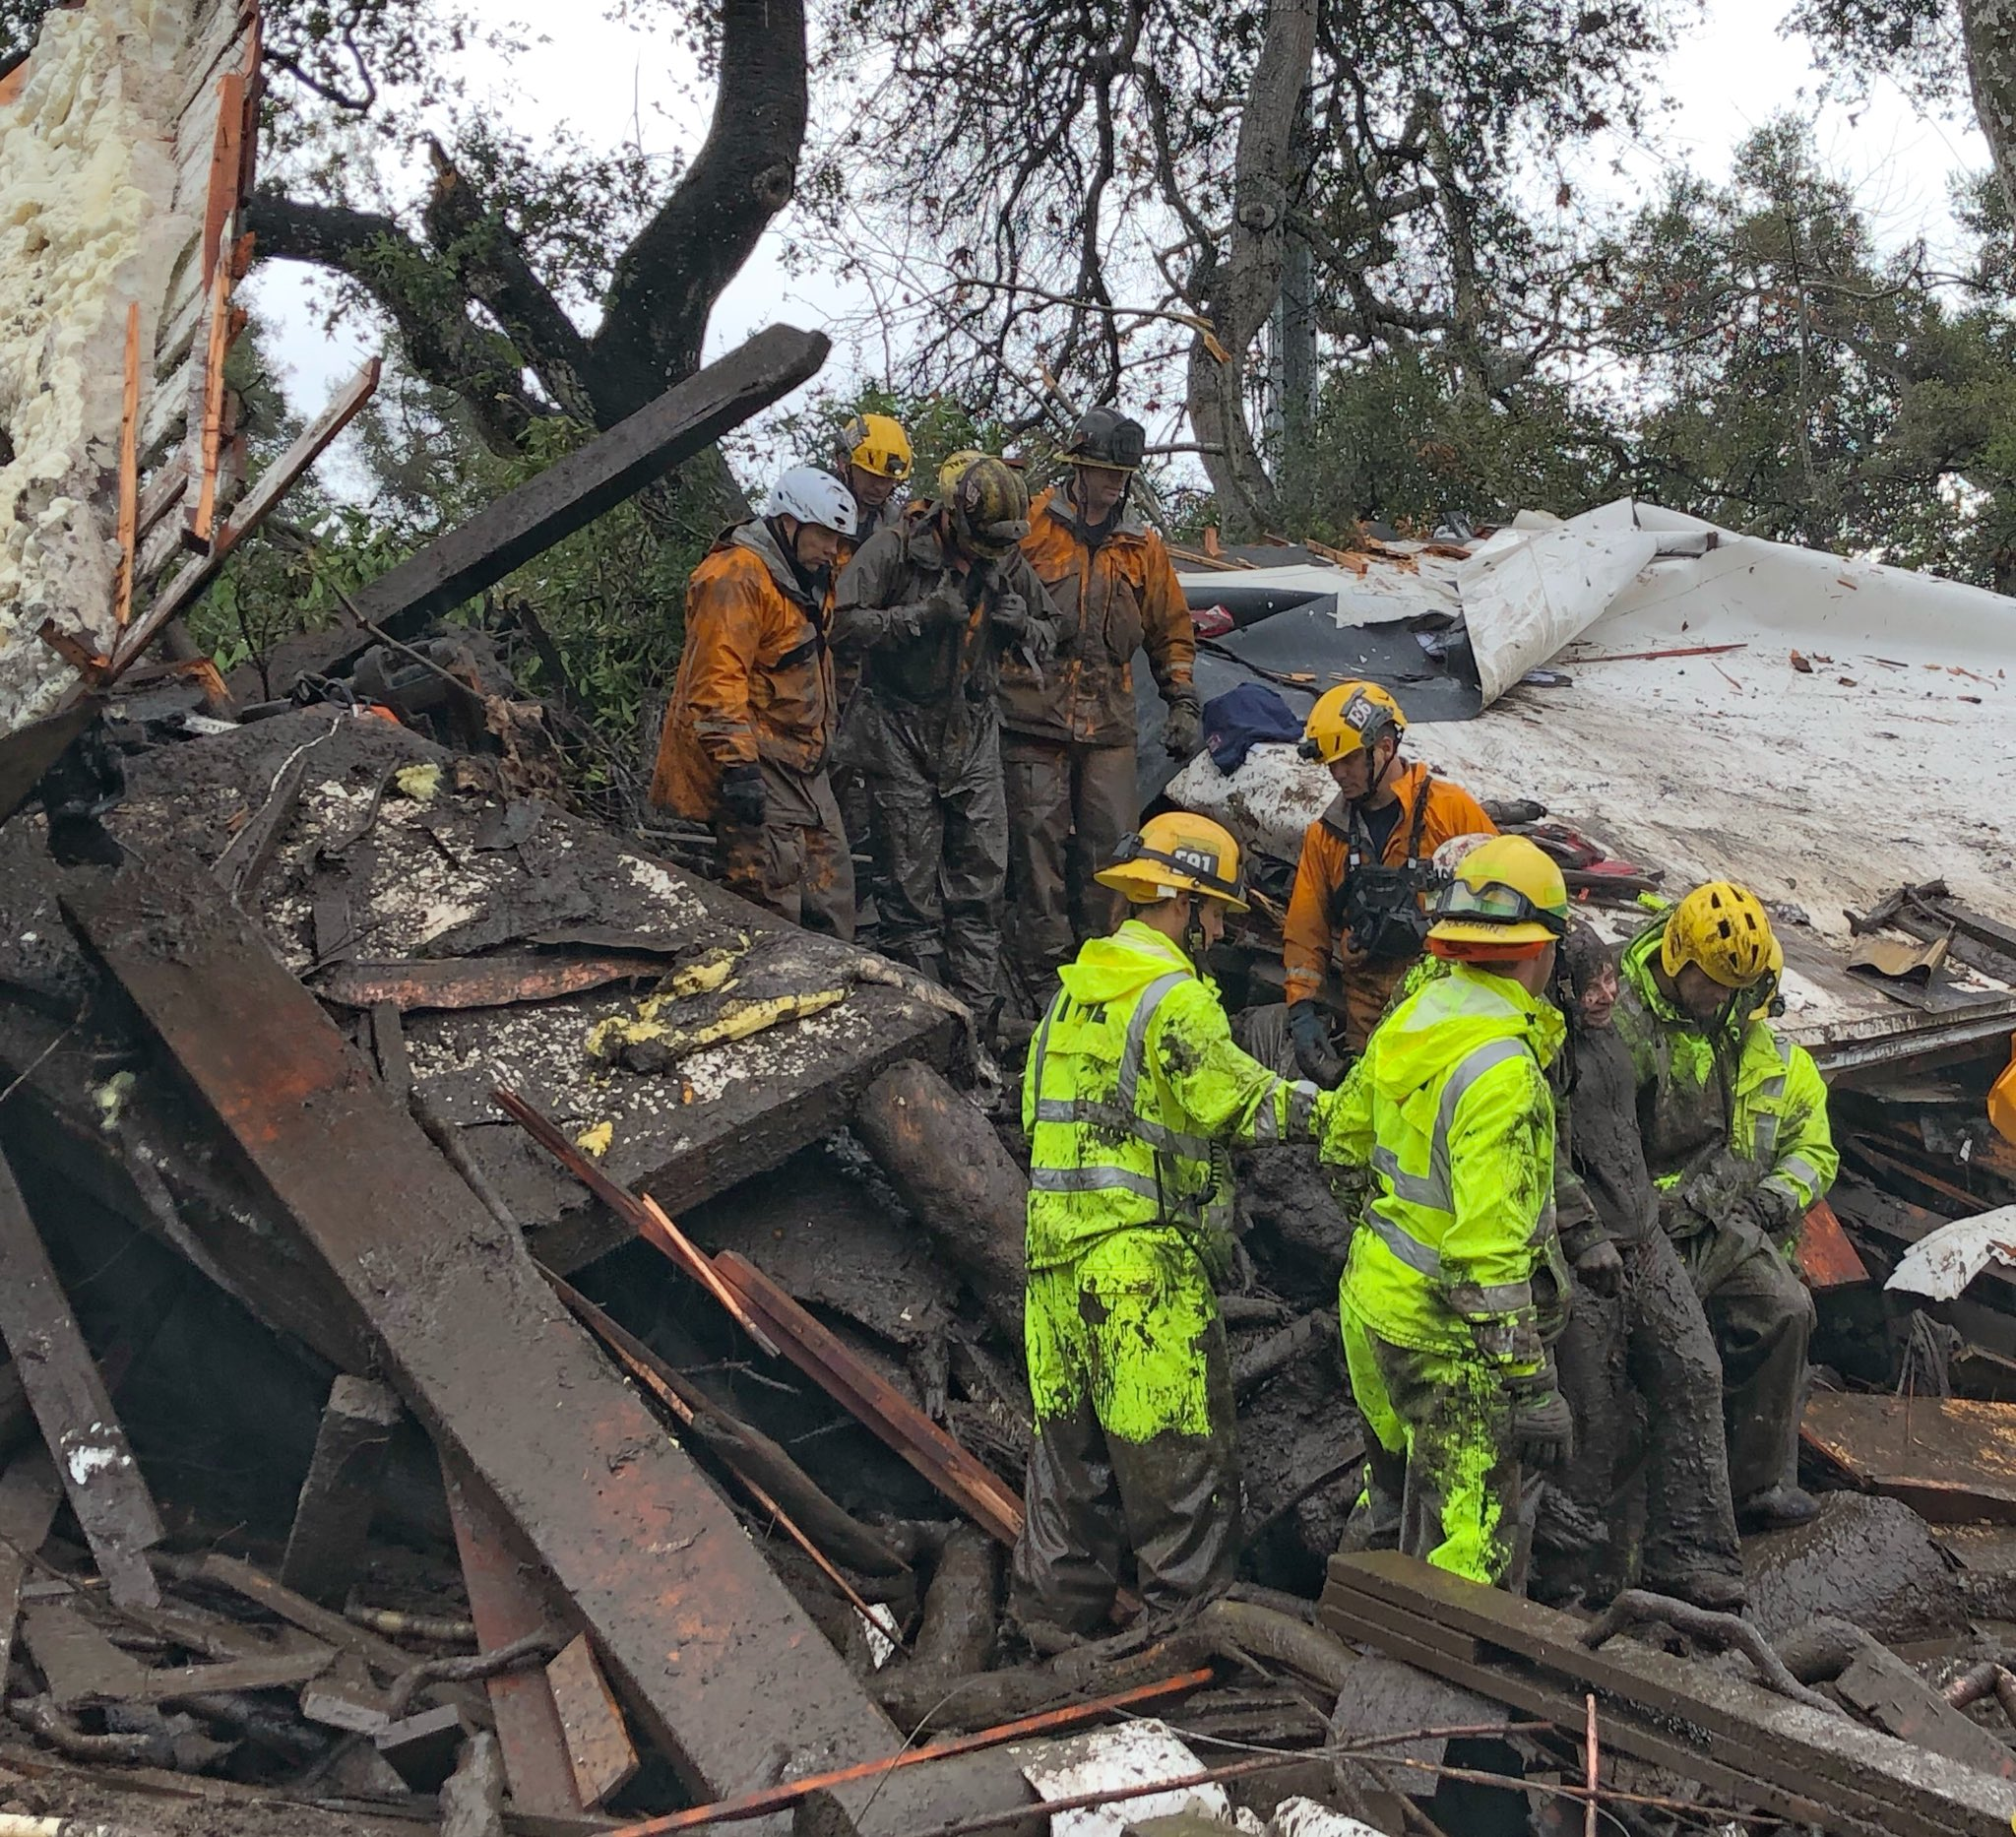 Firefighters successfully rescued a 14 yr old girl (right) after she was trapped for hours inside a destroyed home in Montecito. (Photo: Mike Eliason / Santa Barbara County Fire)